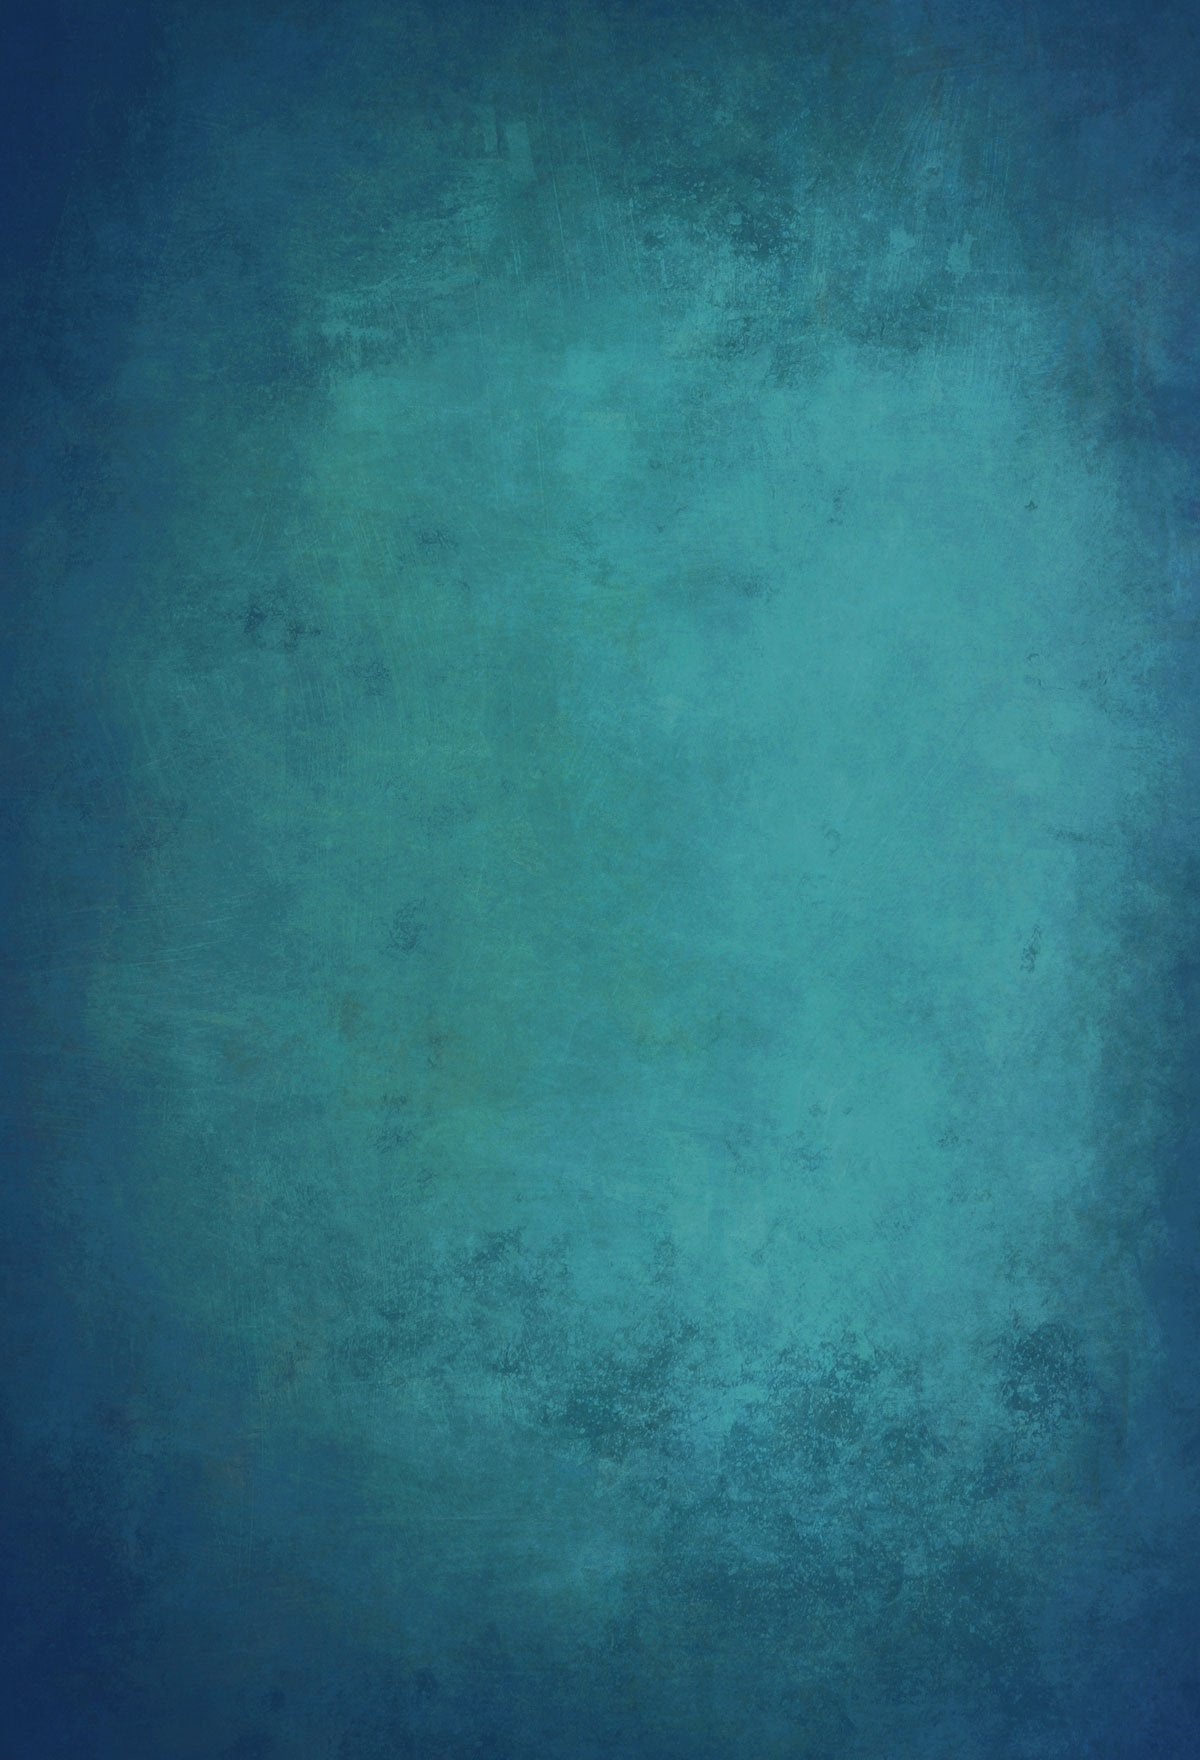 Load image into Gallery viewer, Kate Abstract Blue Green Backdrop Texture Photographer Photography - Kate backdrops UK